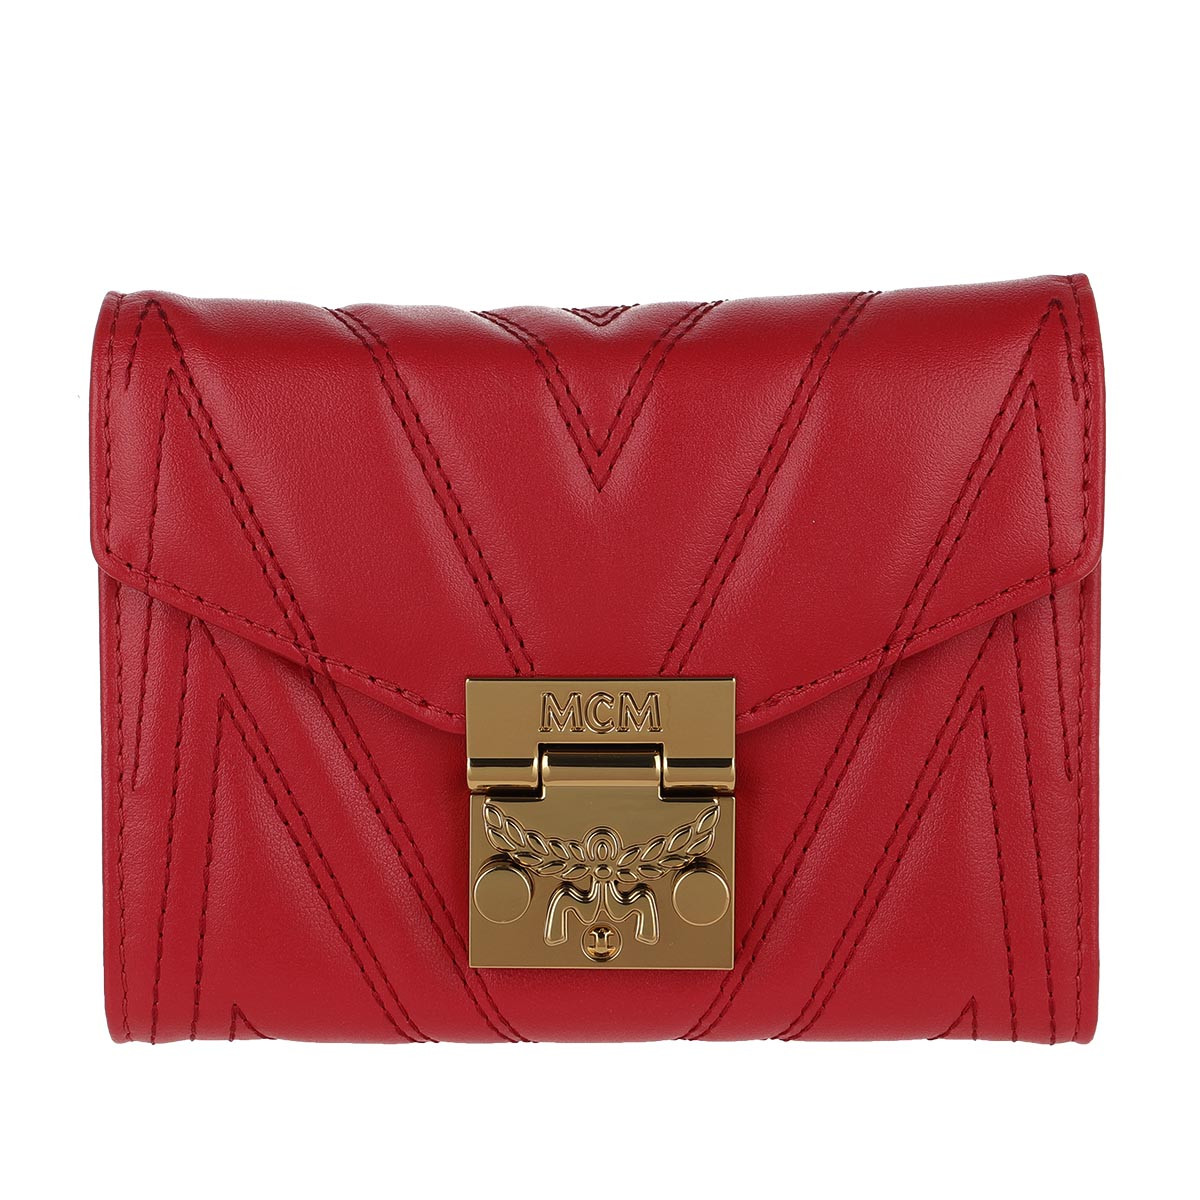 MCM Portemonnaie - Small Quilted Wallet Ruby Red - in rot - für Damen